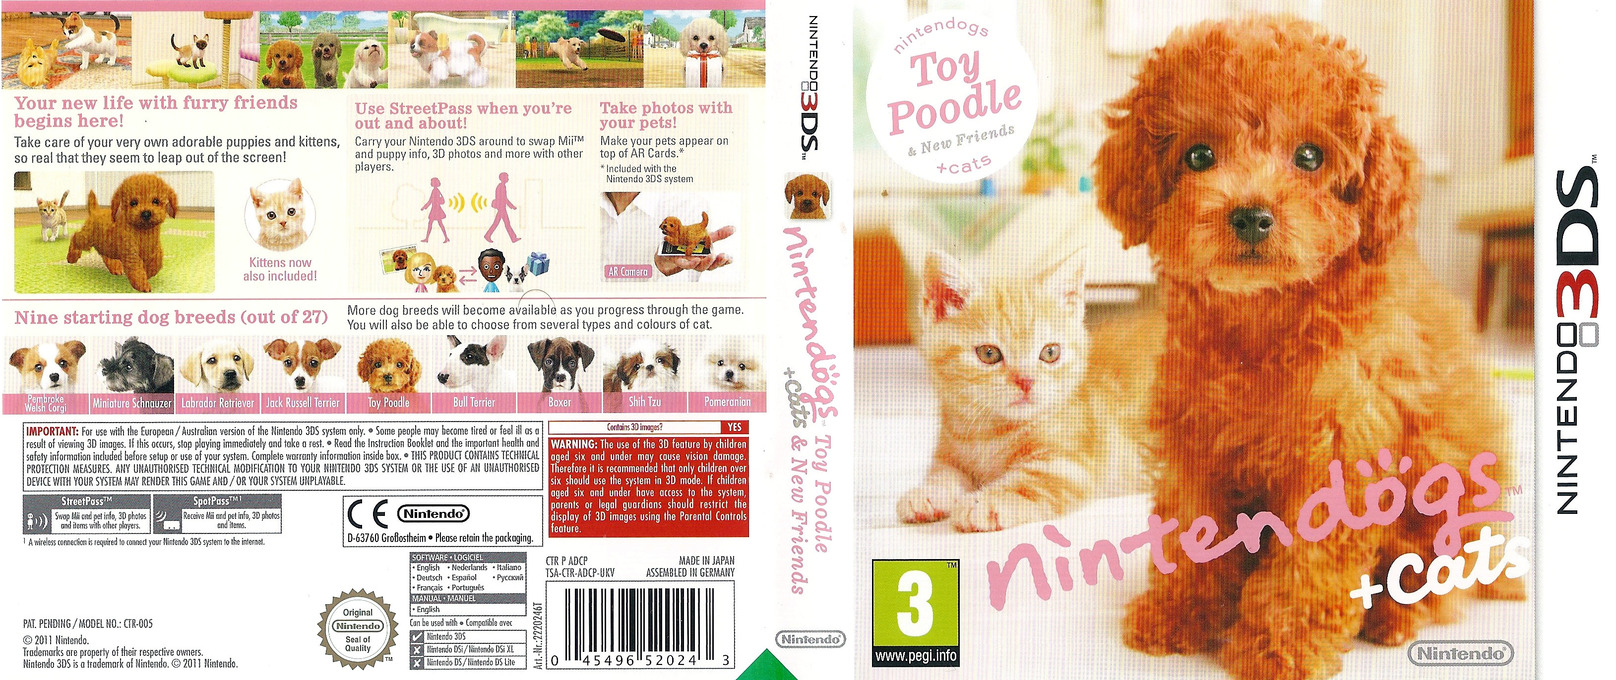 Nintendogs + Cats - Toy Poodle & New Friends 3DS coverfullHQ (ADCP)